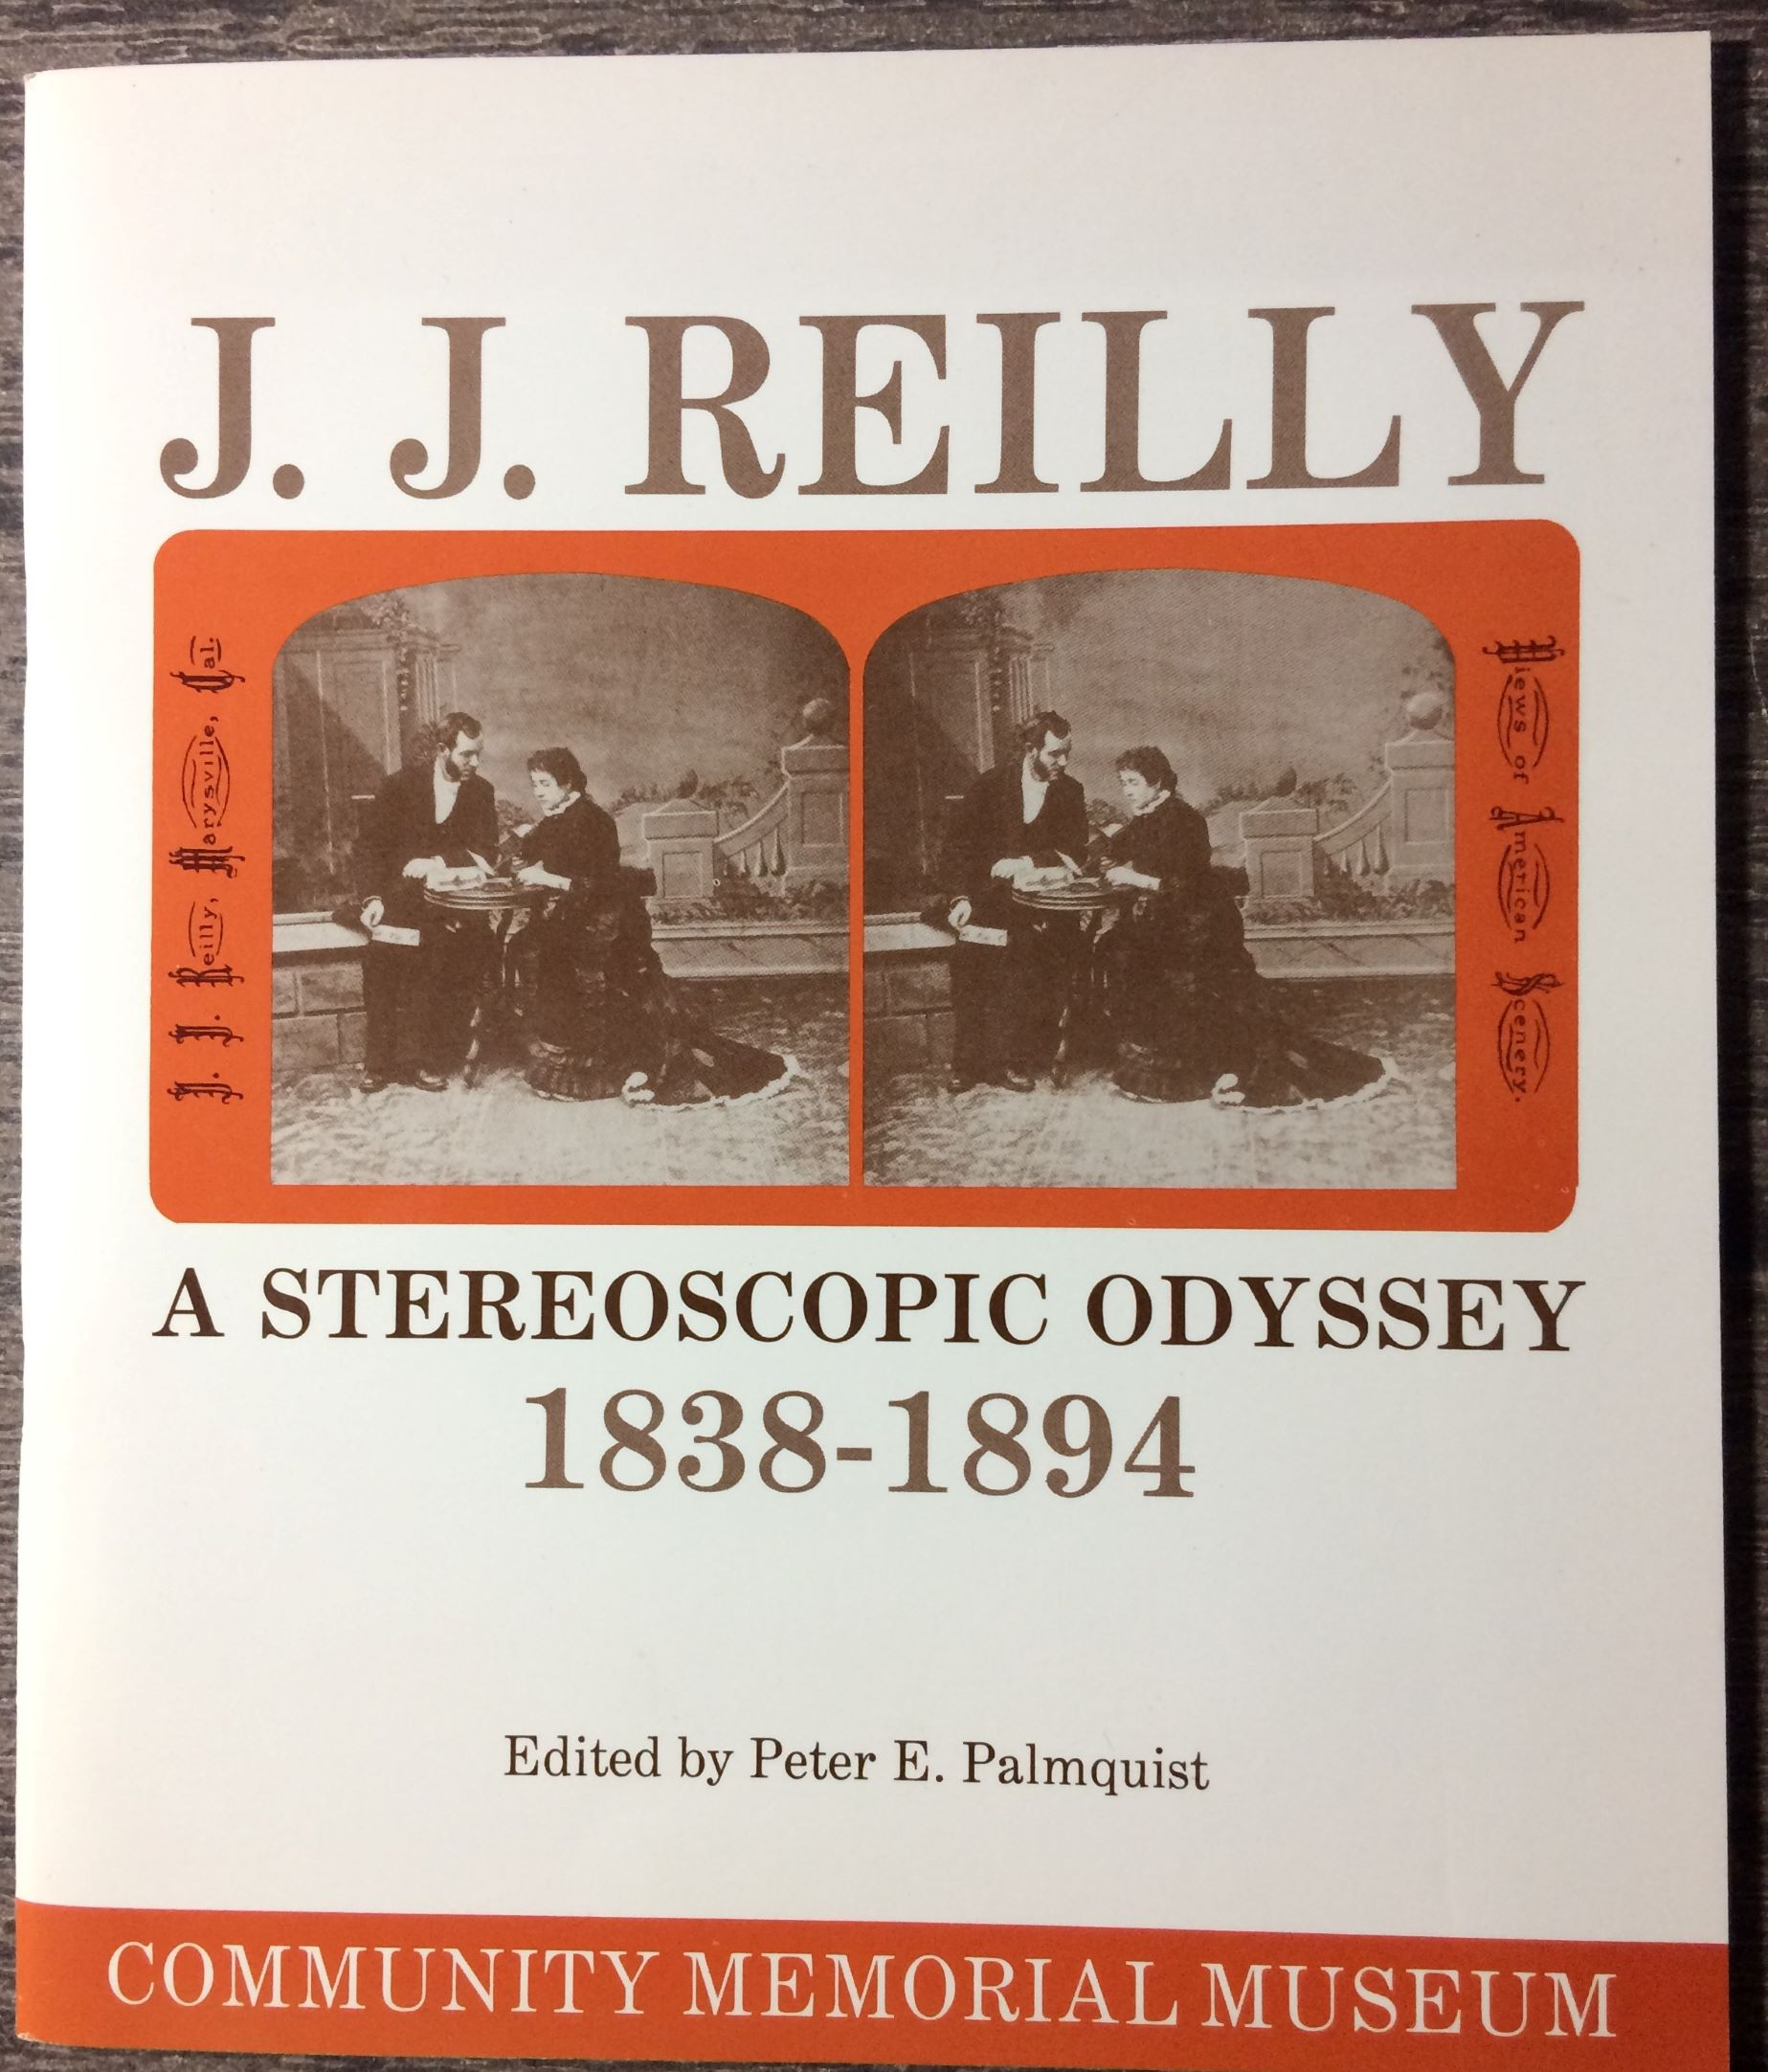 Image for J. J. Reilly, A Sterioscopic Odyssey.